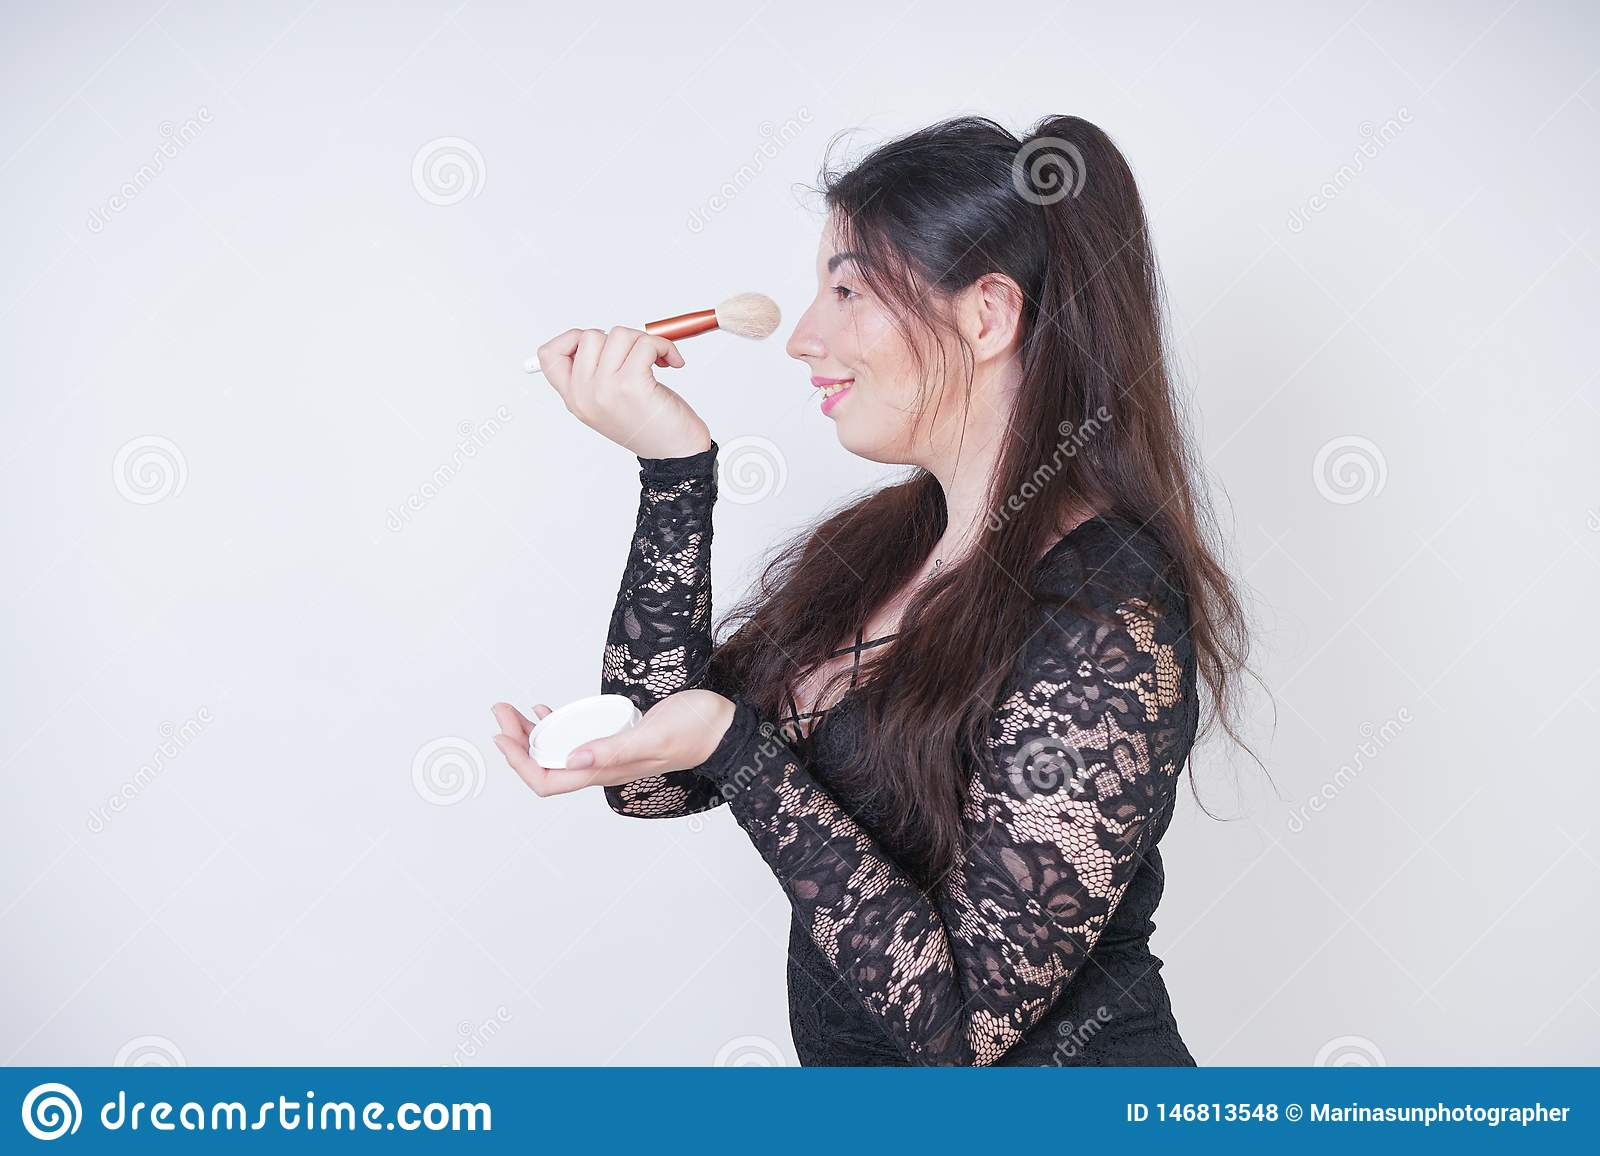 Cute Asian girl in black lace evening dress with powder and a brush in hands on white background